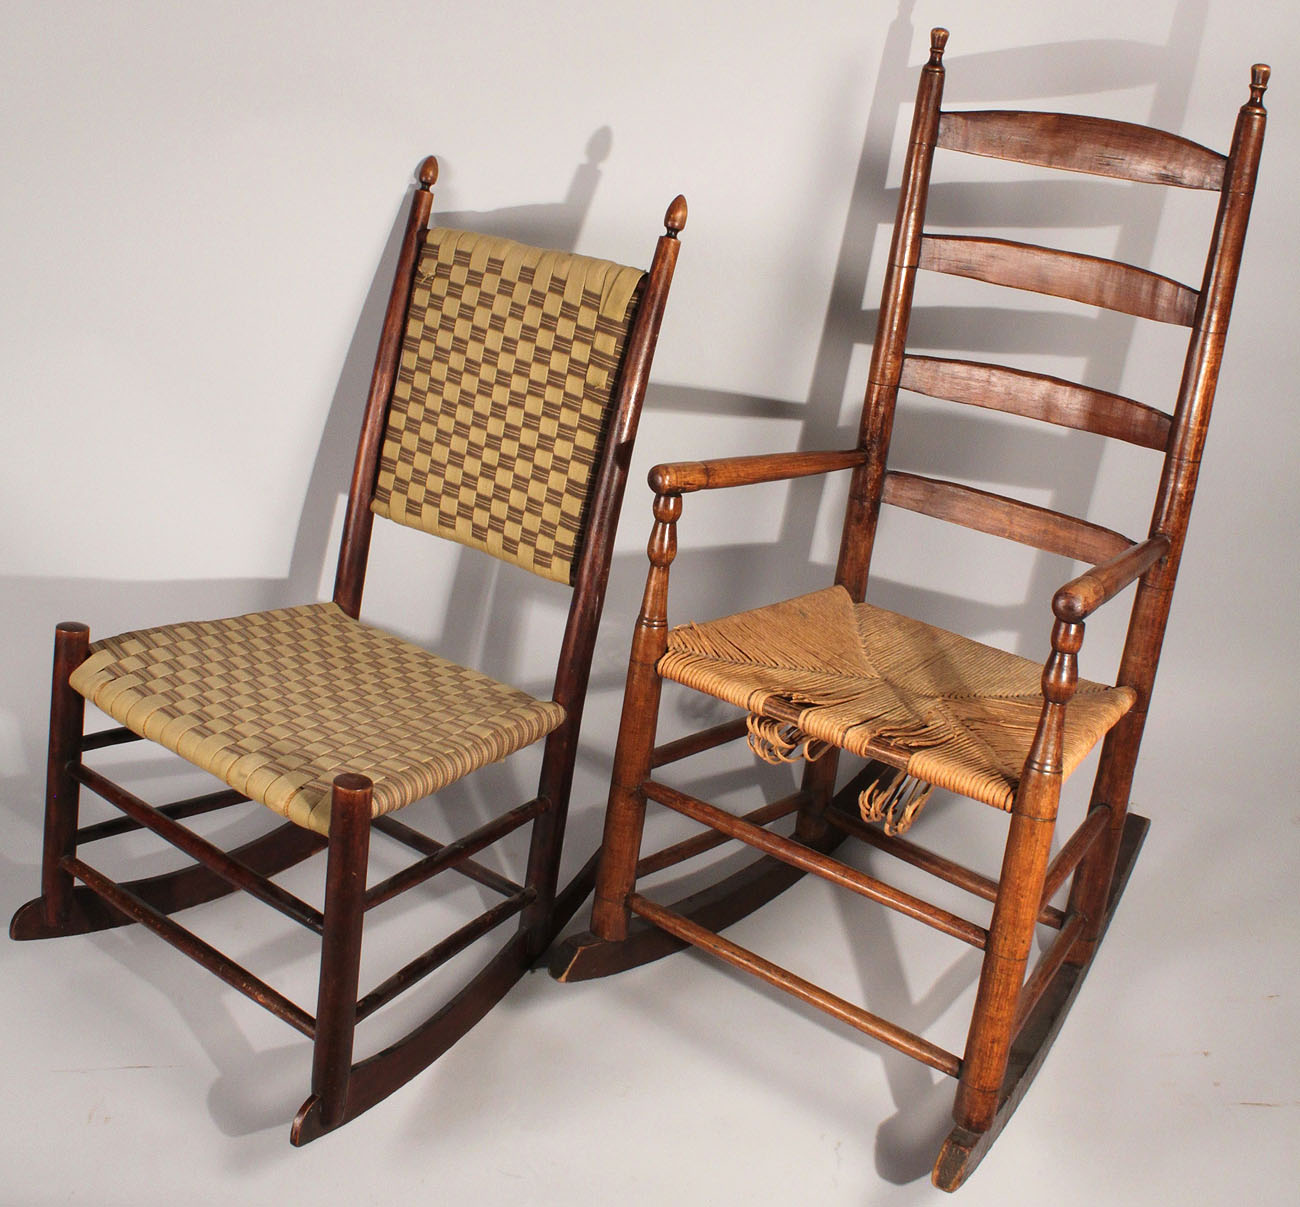 Lot 449: 2 Rocking chairs, Shaker and Tennessee - 449: 2 Rocking Chairs.  Antique ... - Antique Shaker Chair Antique Furniture